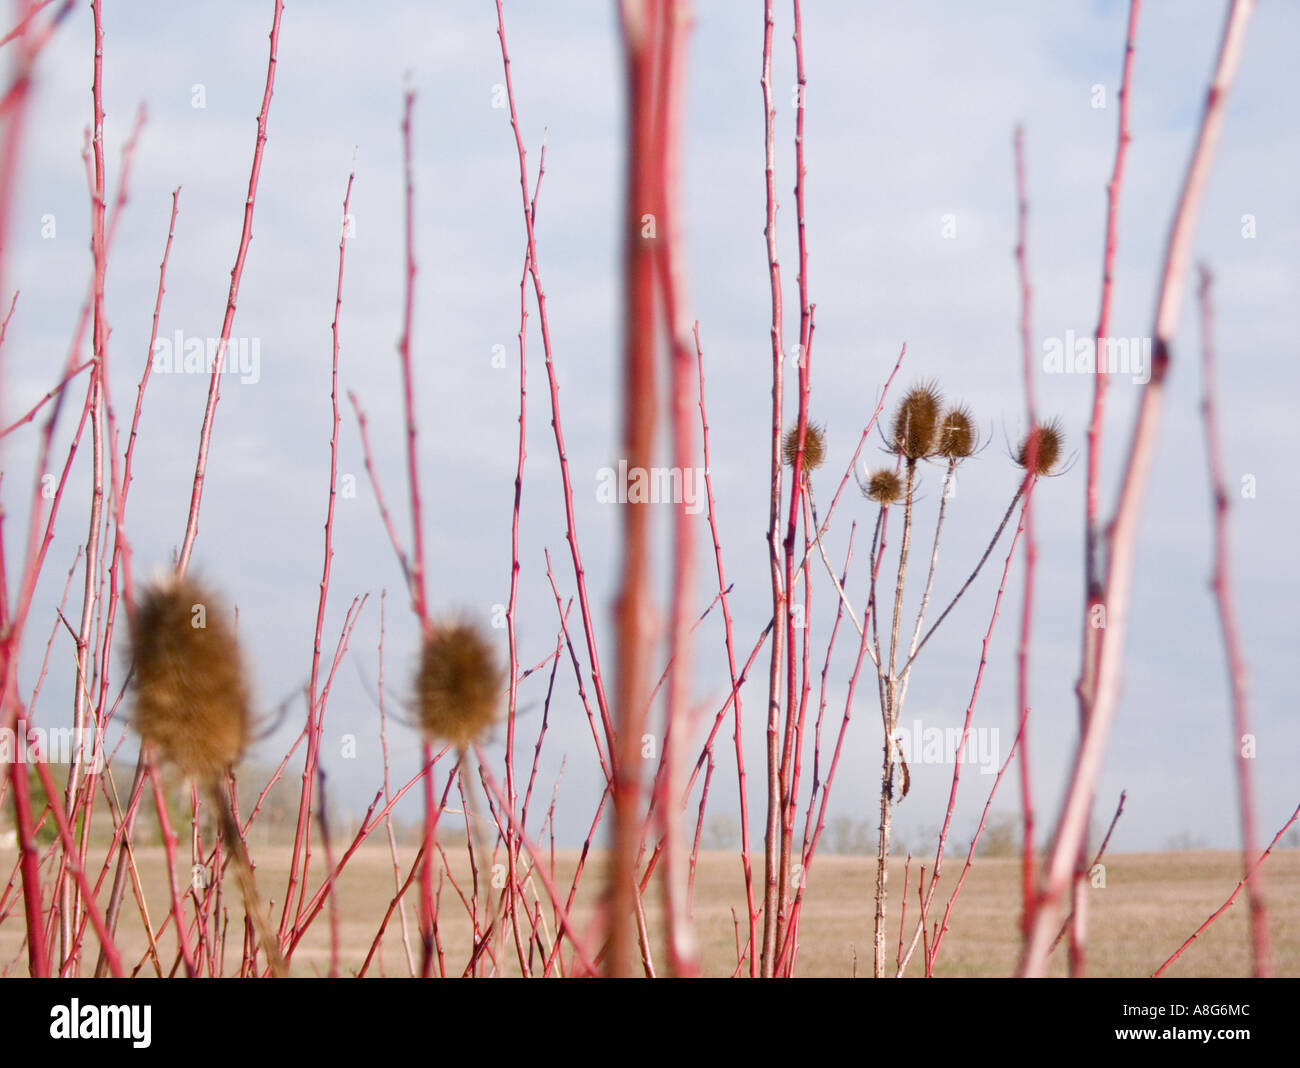 a view through reddish branches with thistles onto  blurred fields - Stock Image